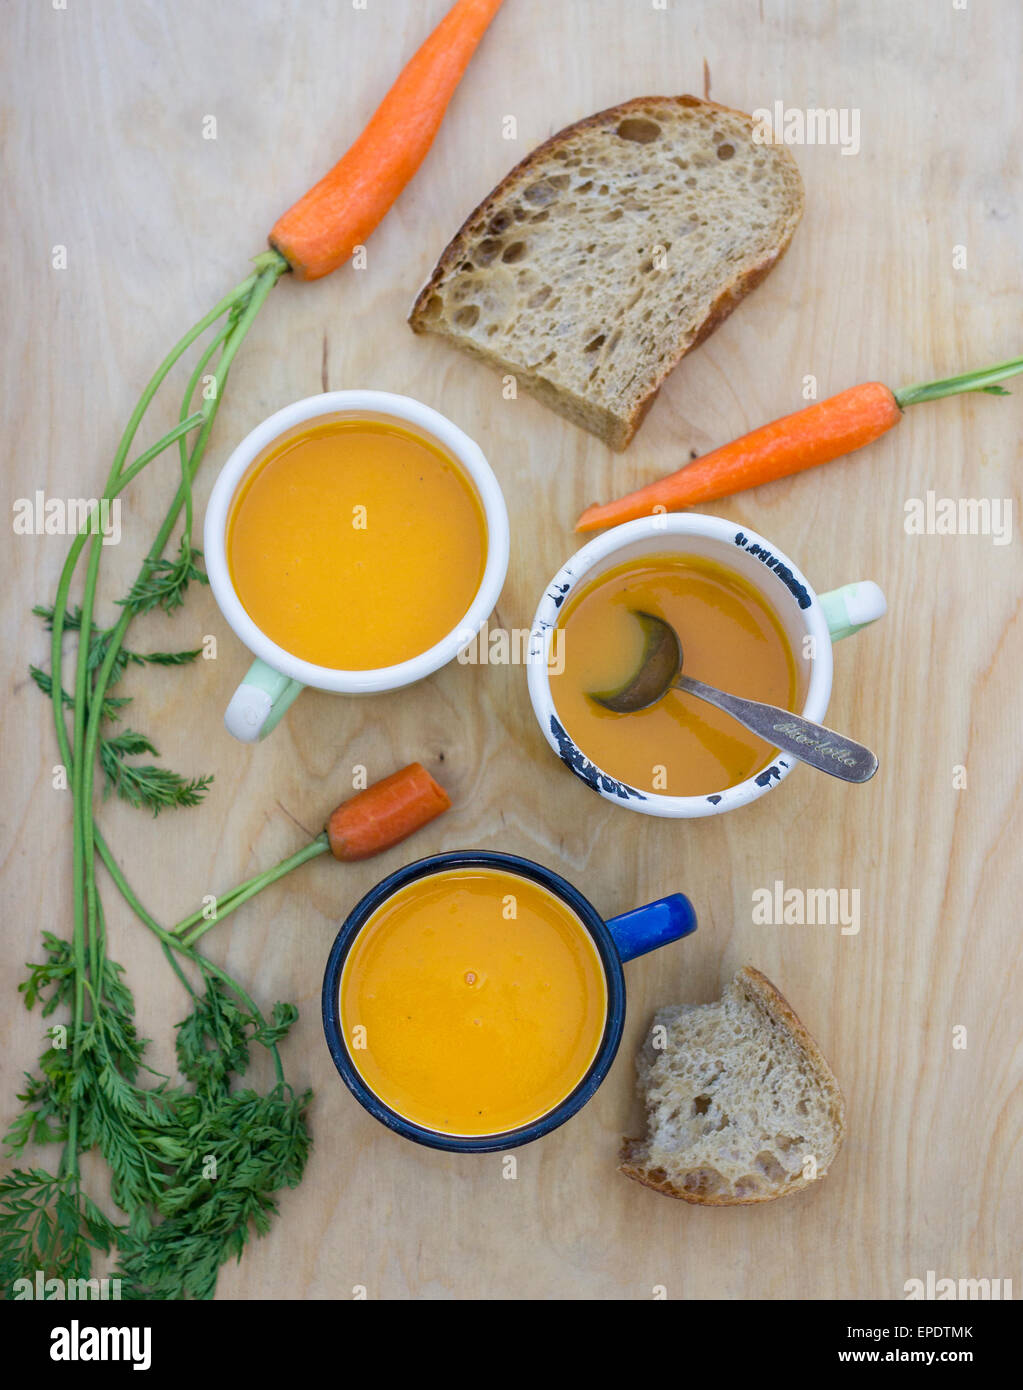 Homemade carrot soup in enamel mugs on a wooden tray with bread and fresh carrots - Stock Image